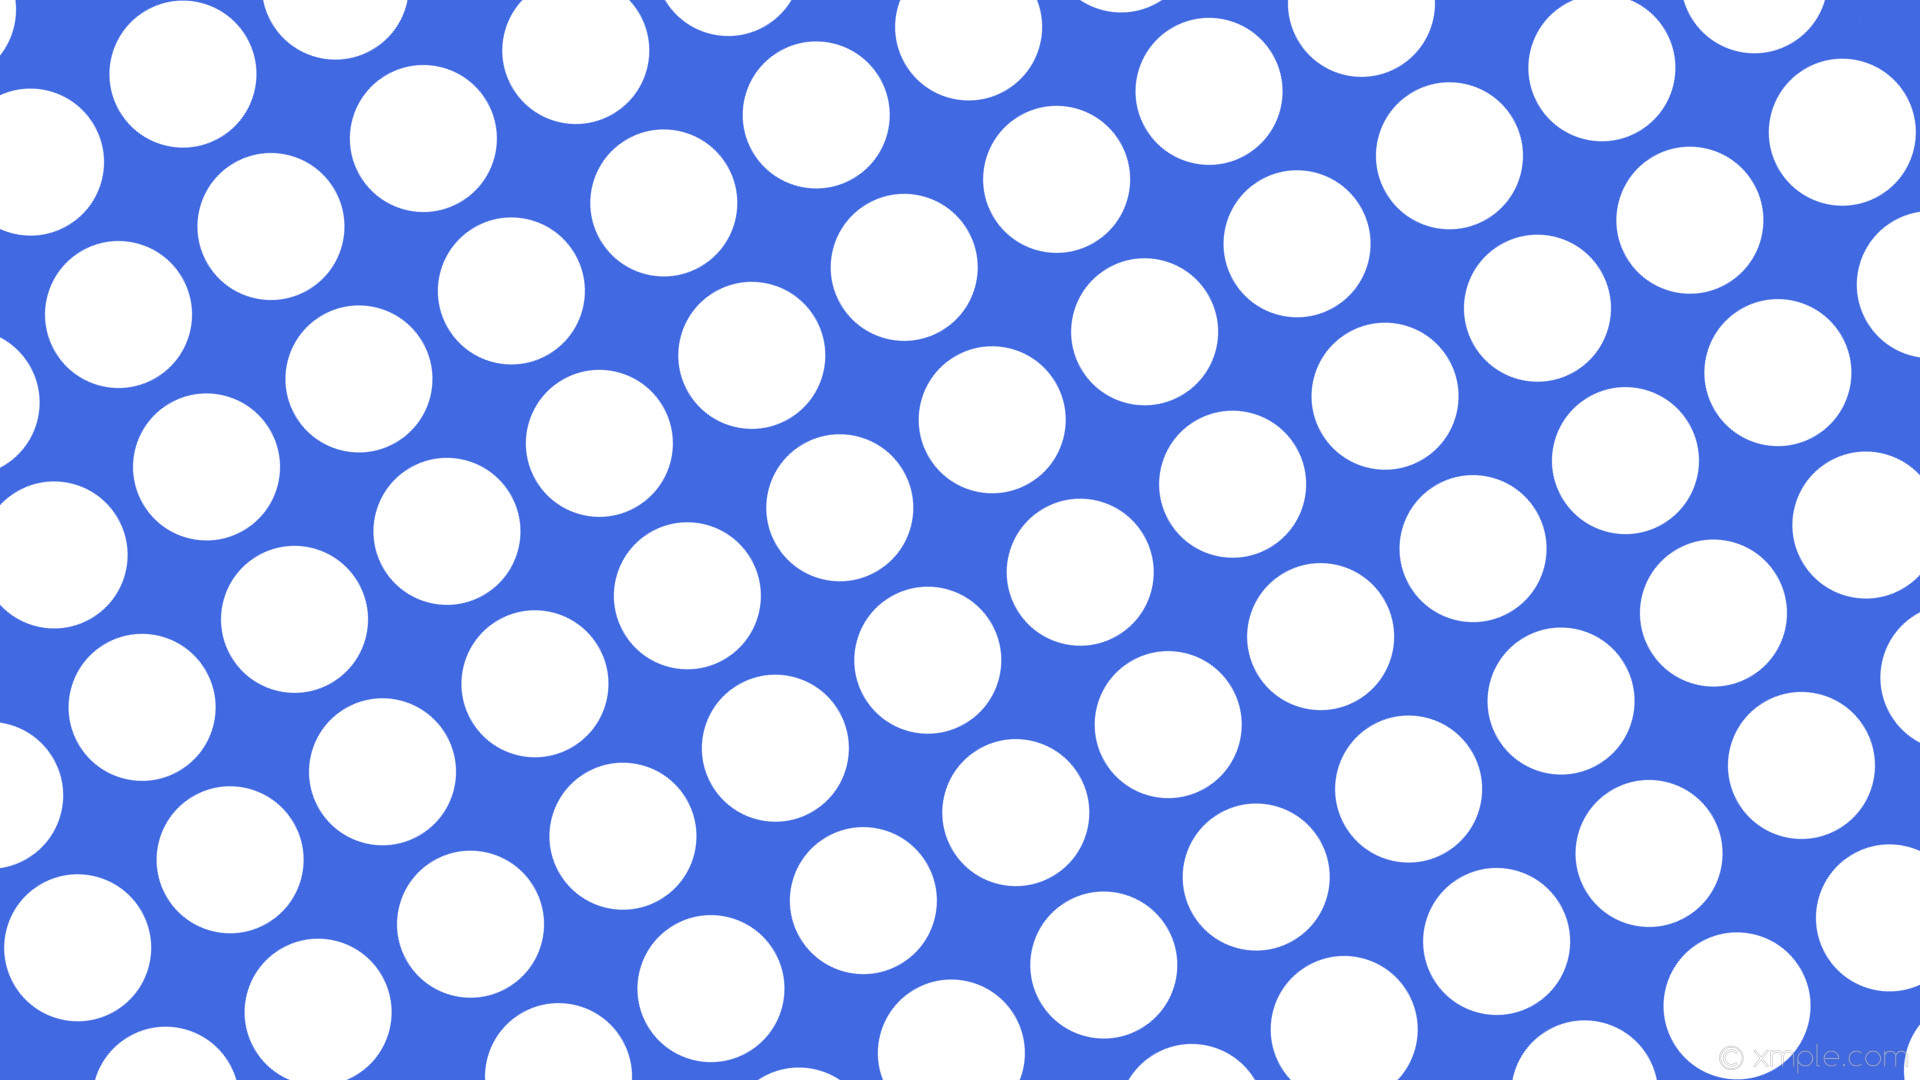 wallpaper blue polka dots spots white royal blue #4169e1 #ffffff 30° 147px  176px